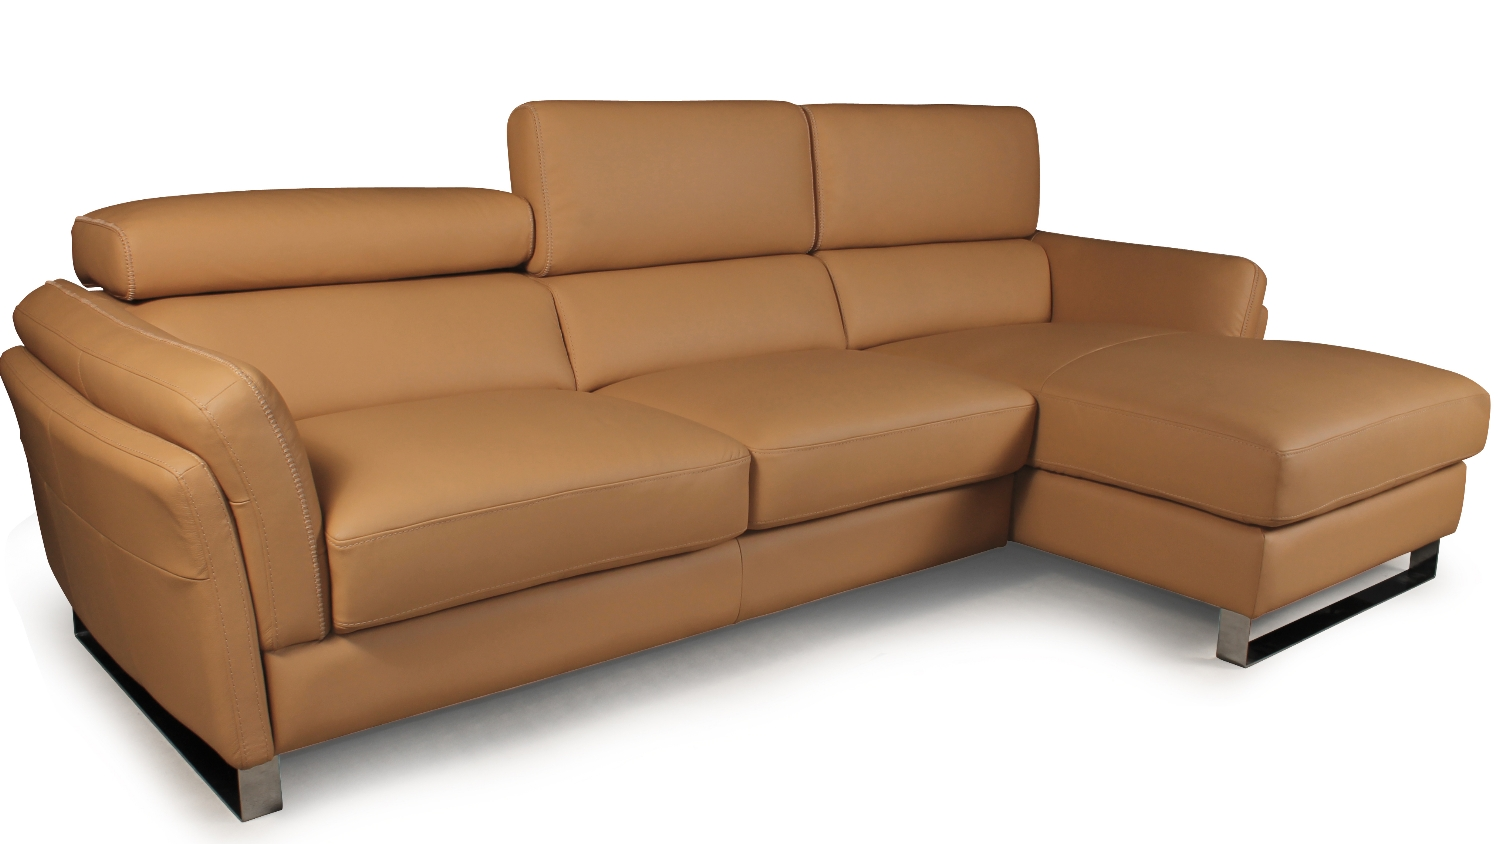 Harper 3 seater sofa with chaise lounge harvey norman for Couch with 2 chaise lounges